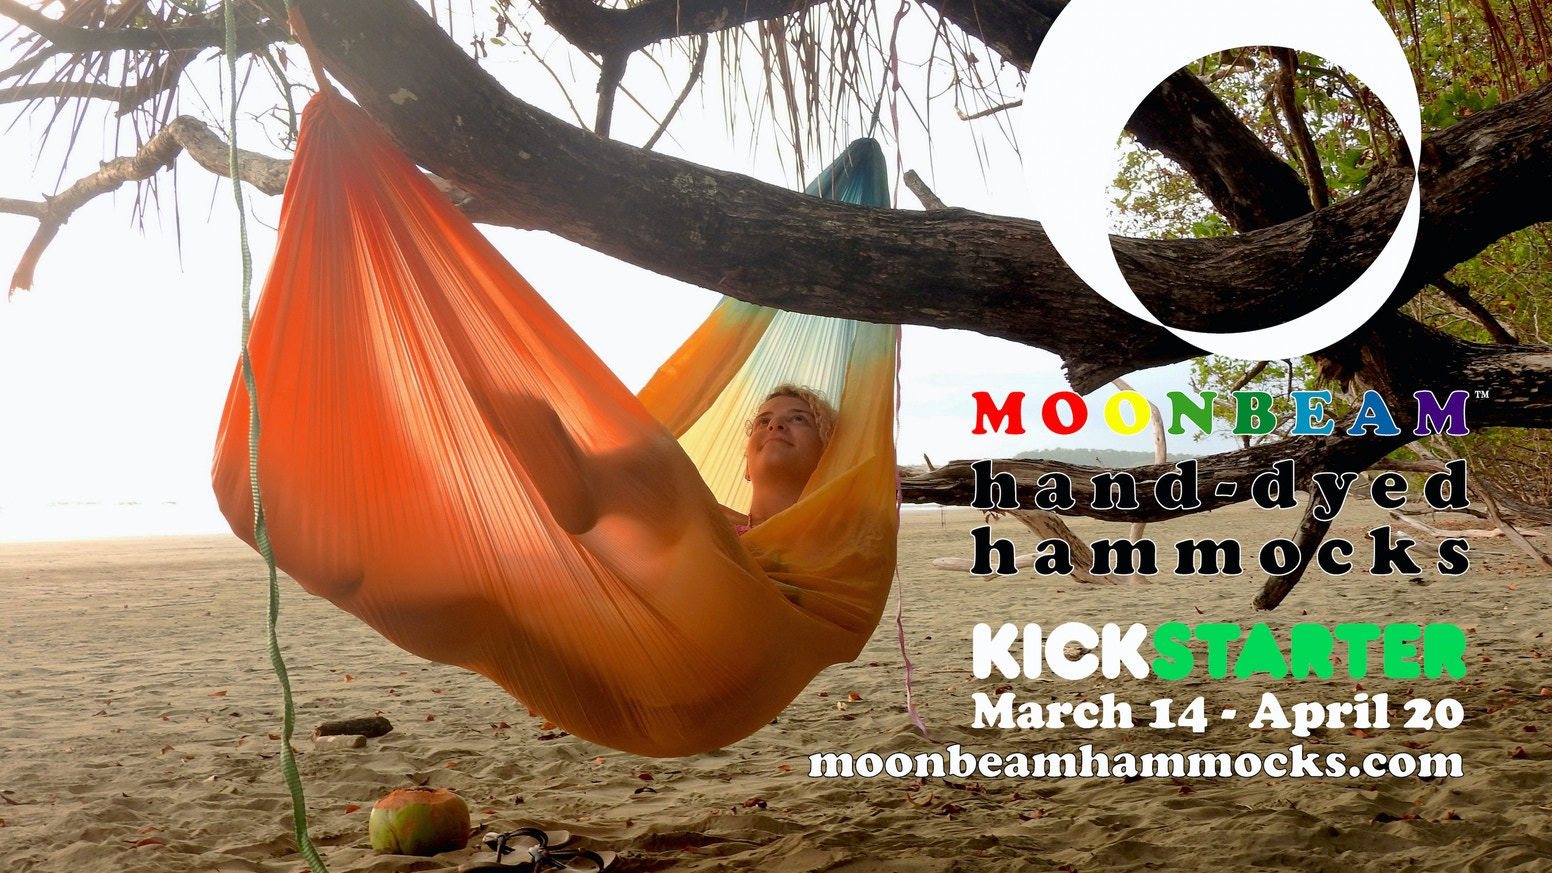 We make the most beautiful ultralight adventure hammocks in the world!  Perfect for the beach, backyard, campus, or trip of a lifetime.